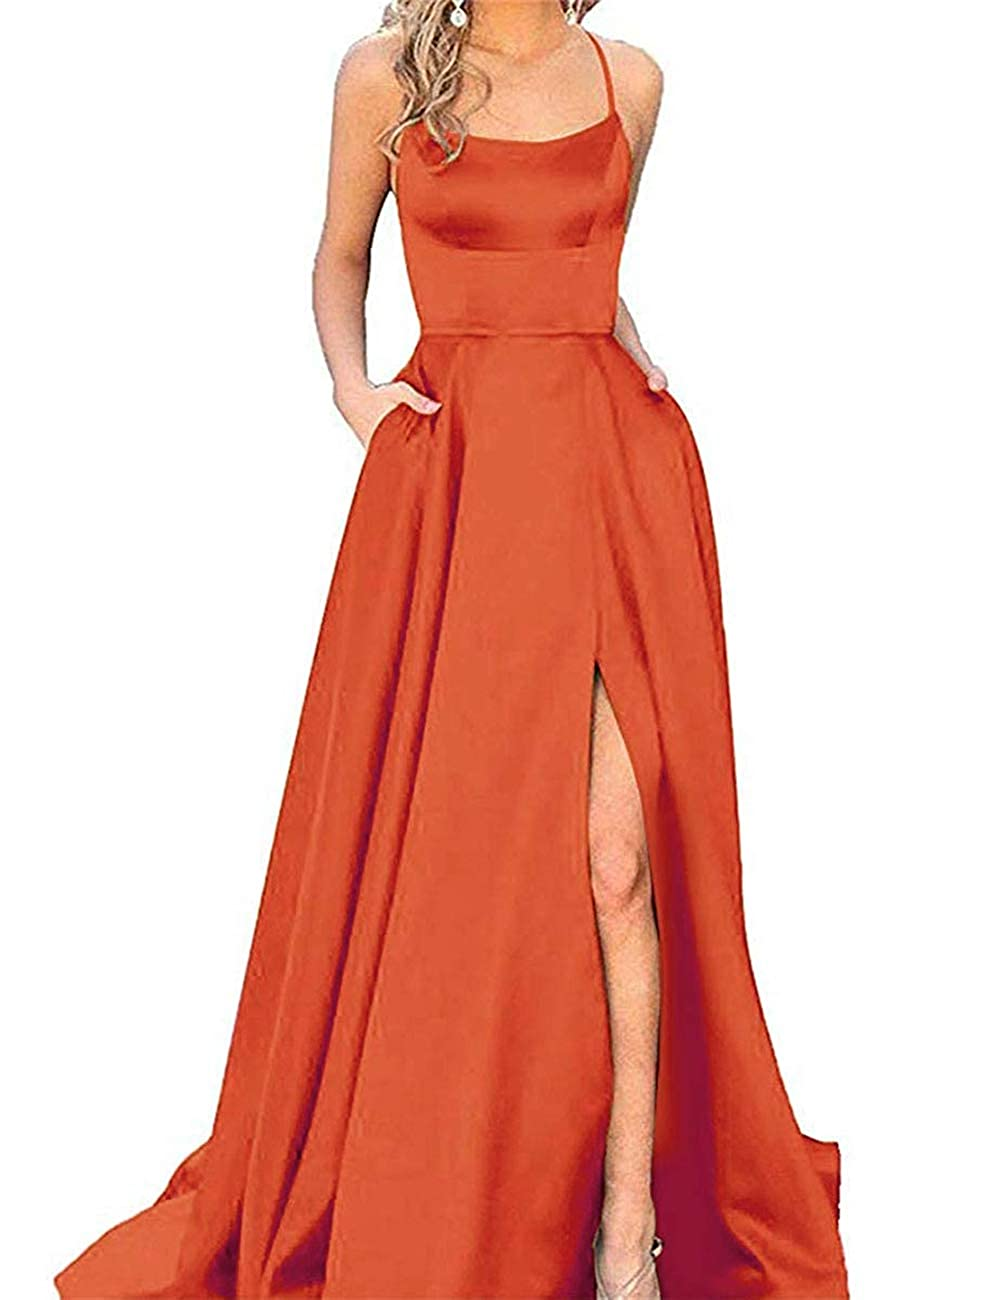 orange APXPF Women's Spaghetti Straps Satin Prom Dress Long Split ALine Formal Party Gown with Pockets